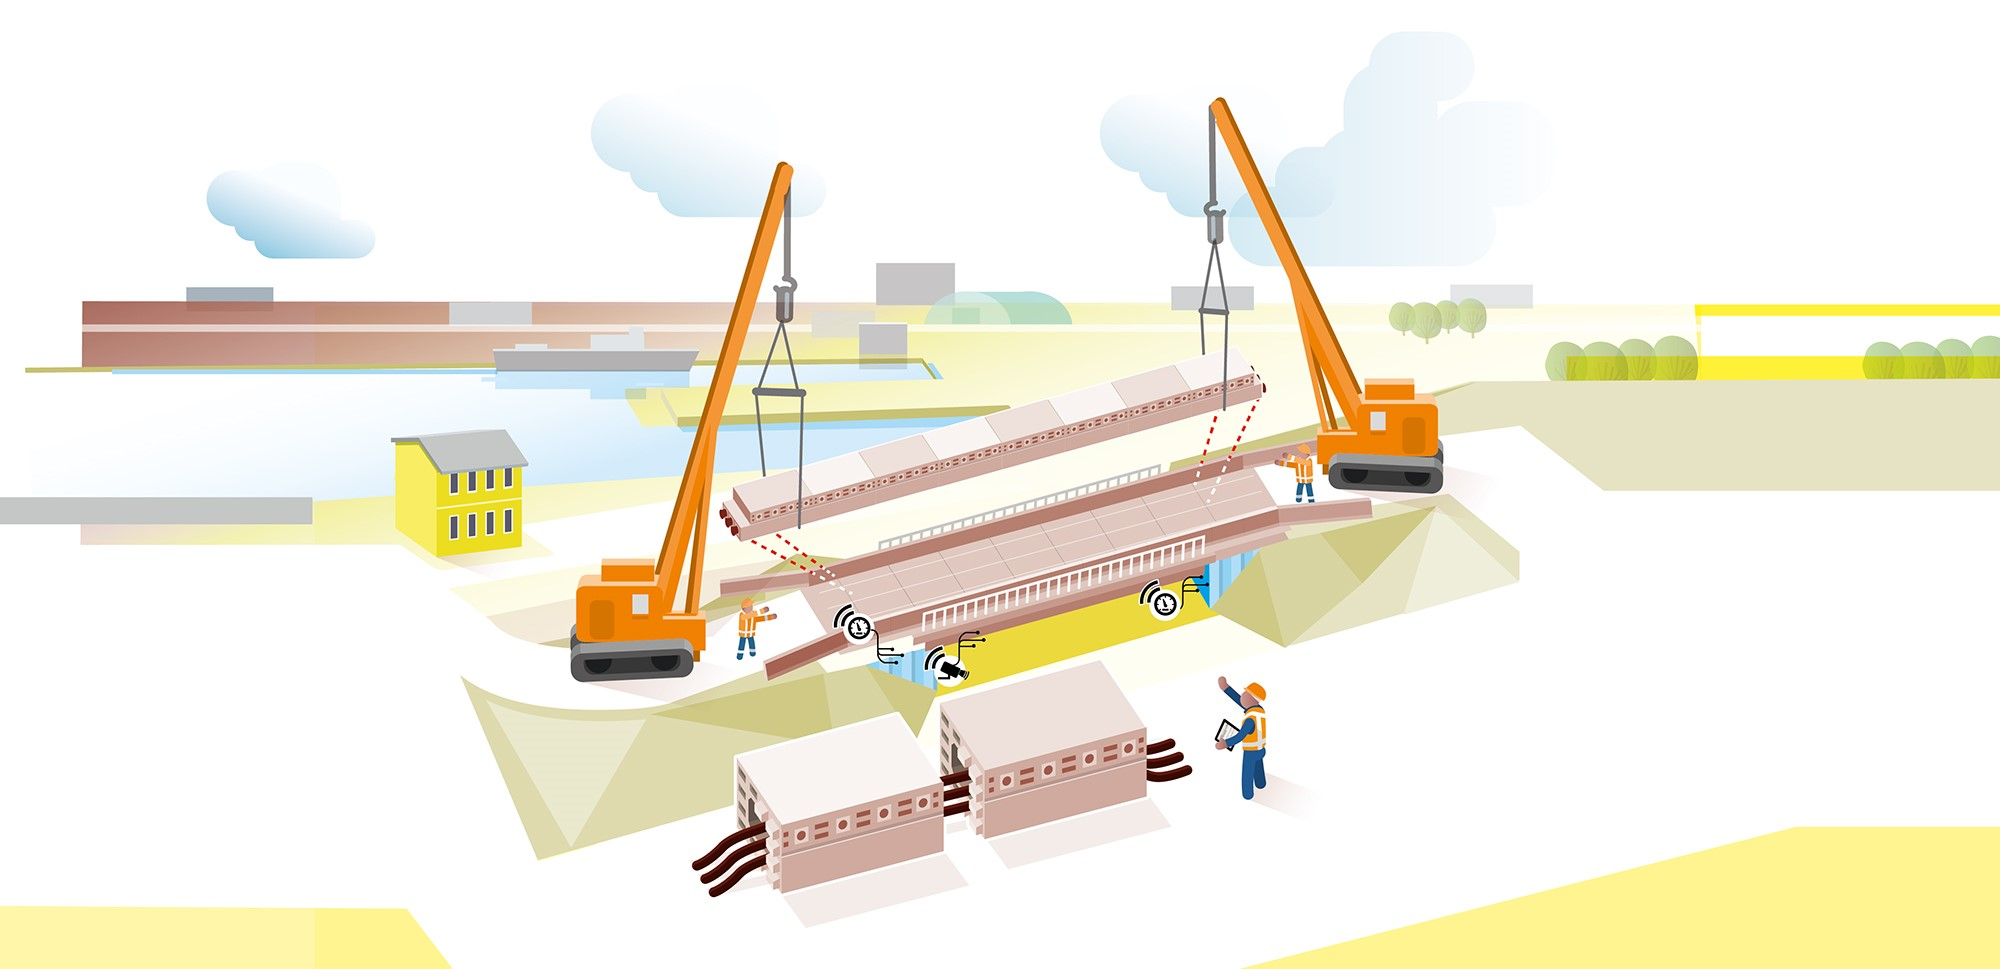 Rijkswaterstaat is aiming to construct, renovate, and replace viaducts to become fully circular by 2030. Image via Rijkswaterstaat.